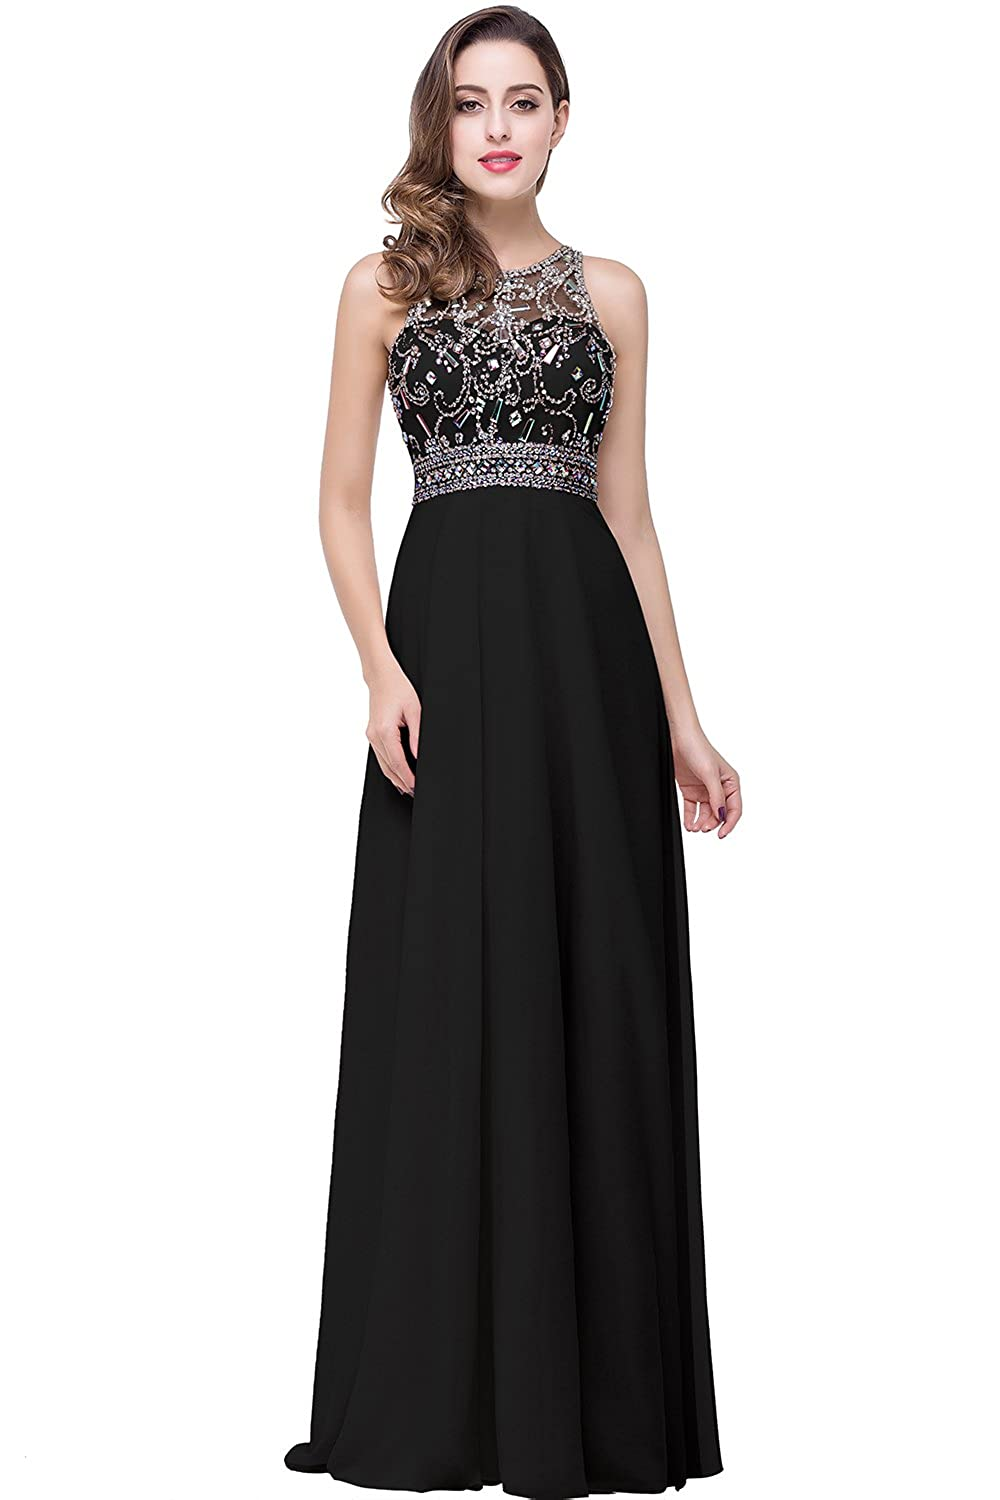 3f1a3e8fa9e MisShow Women s Long Prom Dresses Scoop Neckline Beaded A Line Evening  Gowns at Amazon Women s Clothing store